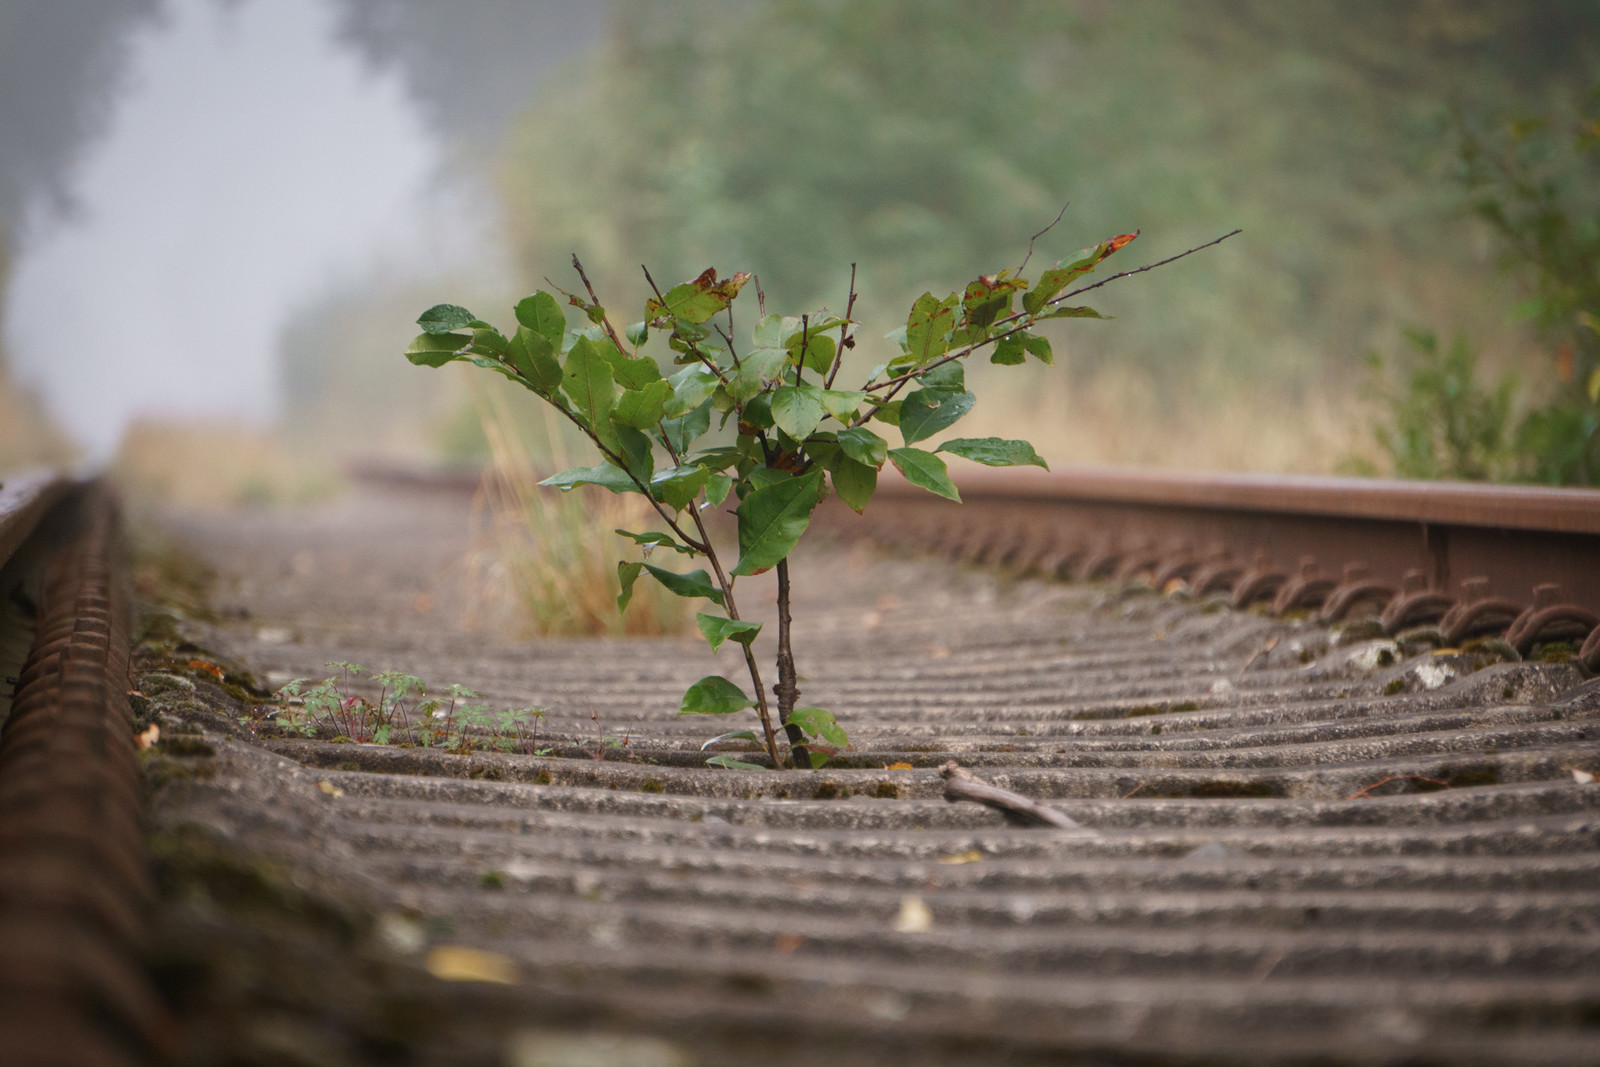 Photo of a lone plant on some railroads